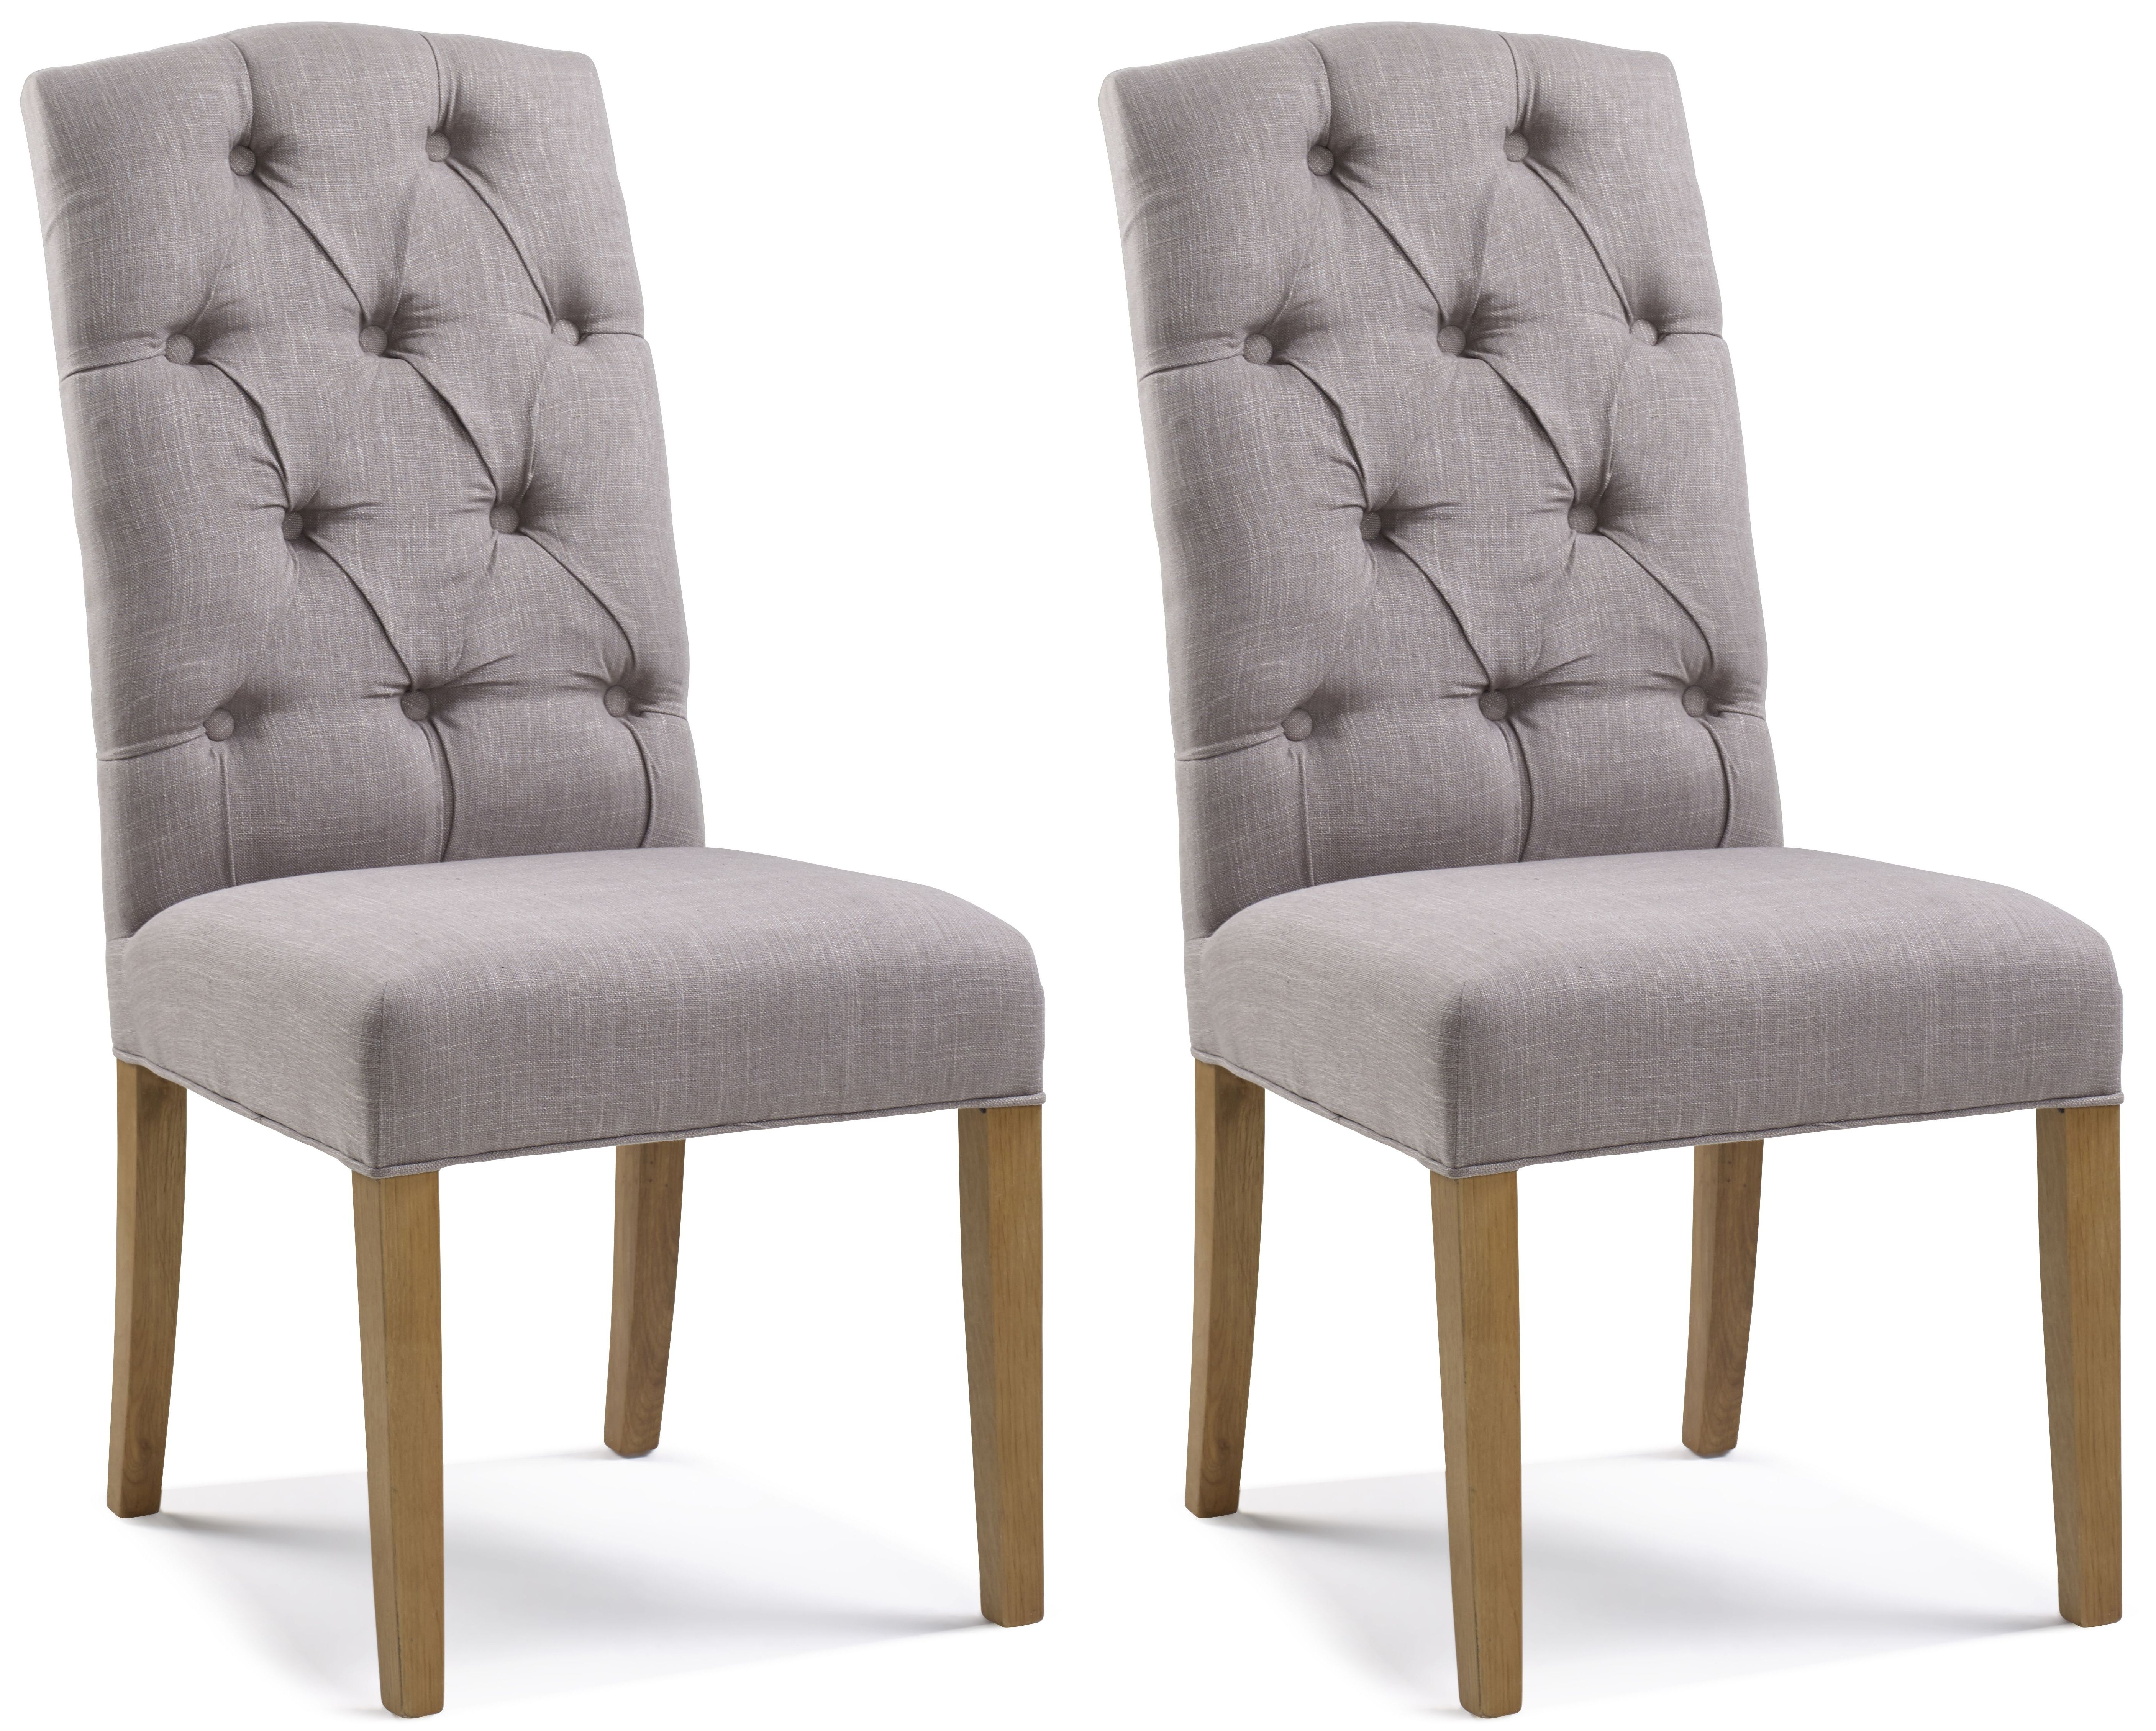 Paterson Arch Top Putty Button Back Dining Chair (Pair)